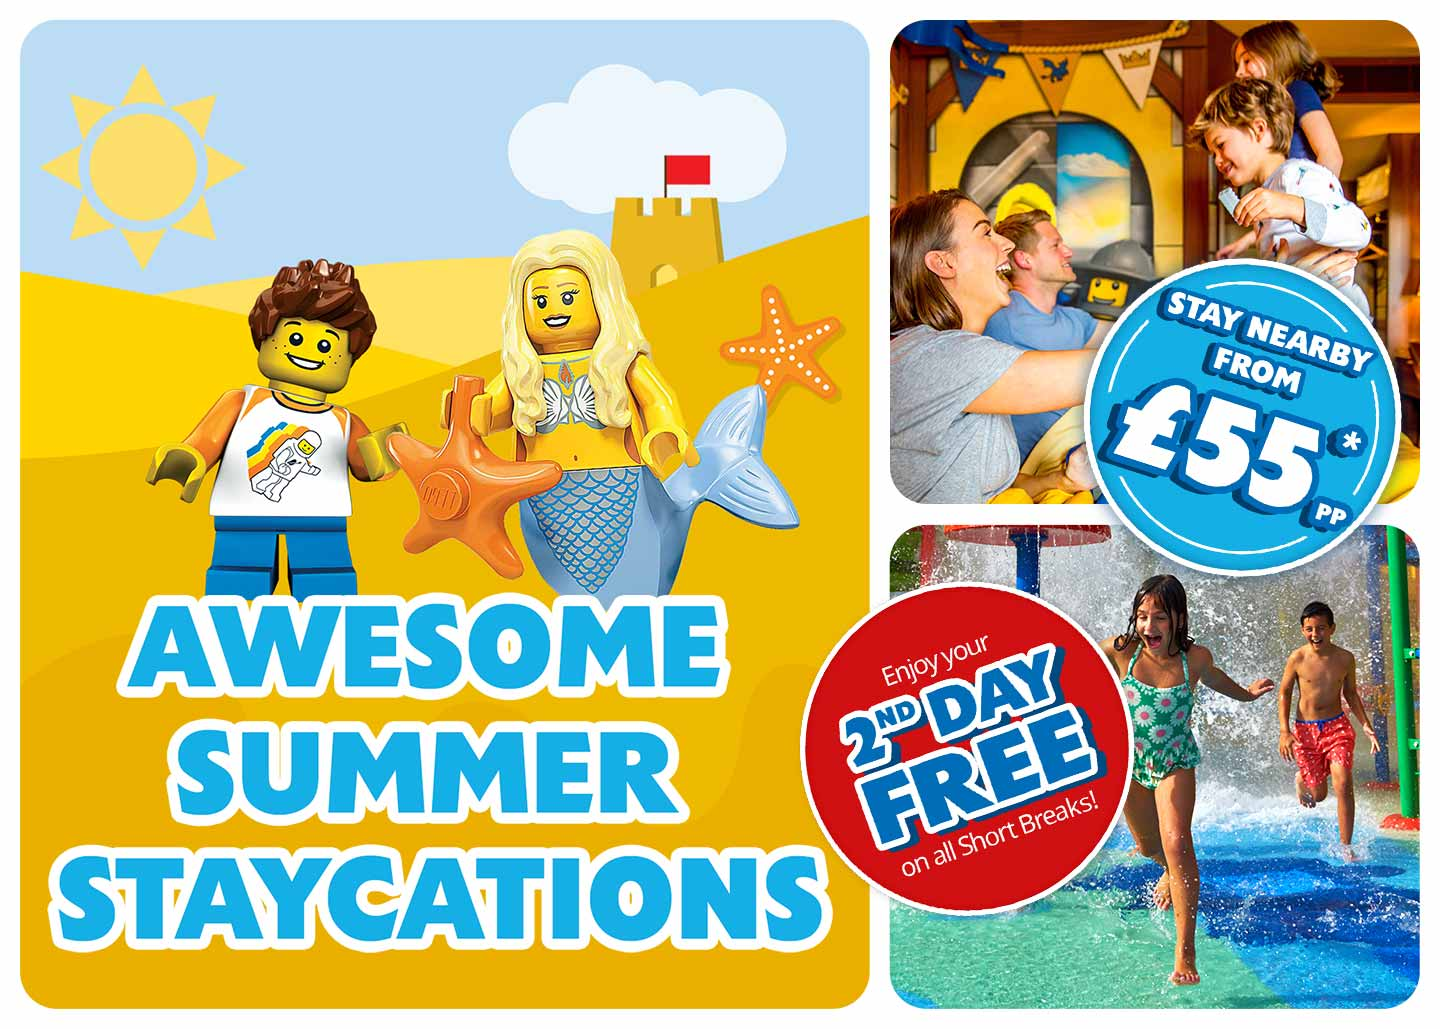 Book today for a Monster summer Stay at LEGOLAND<sup>®</sup> Windsor Resort and enjoy your 2nd Day FREE in the Theme Park!